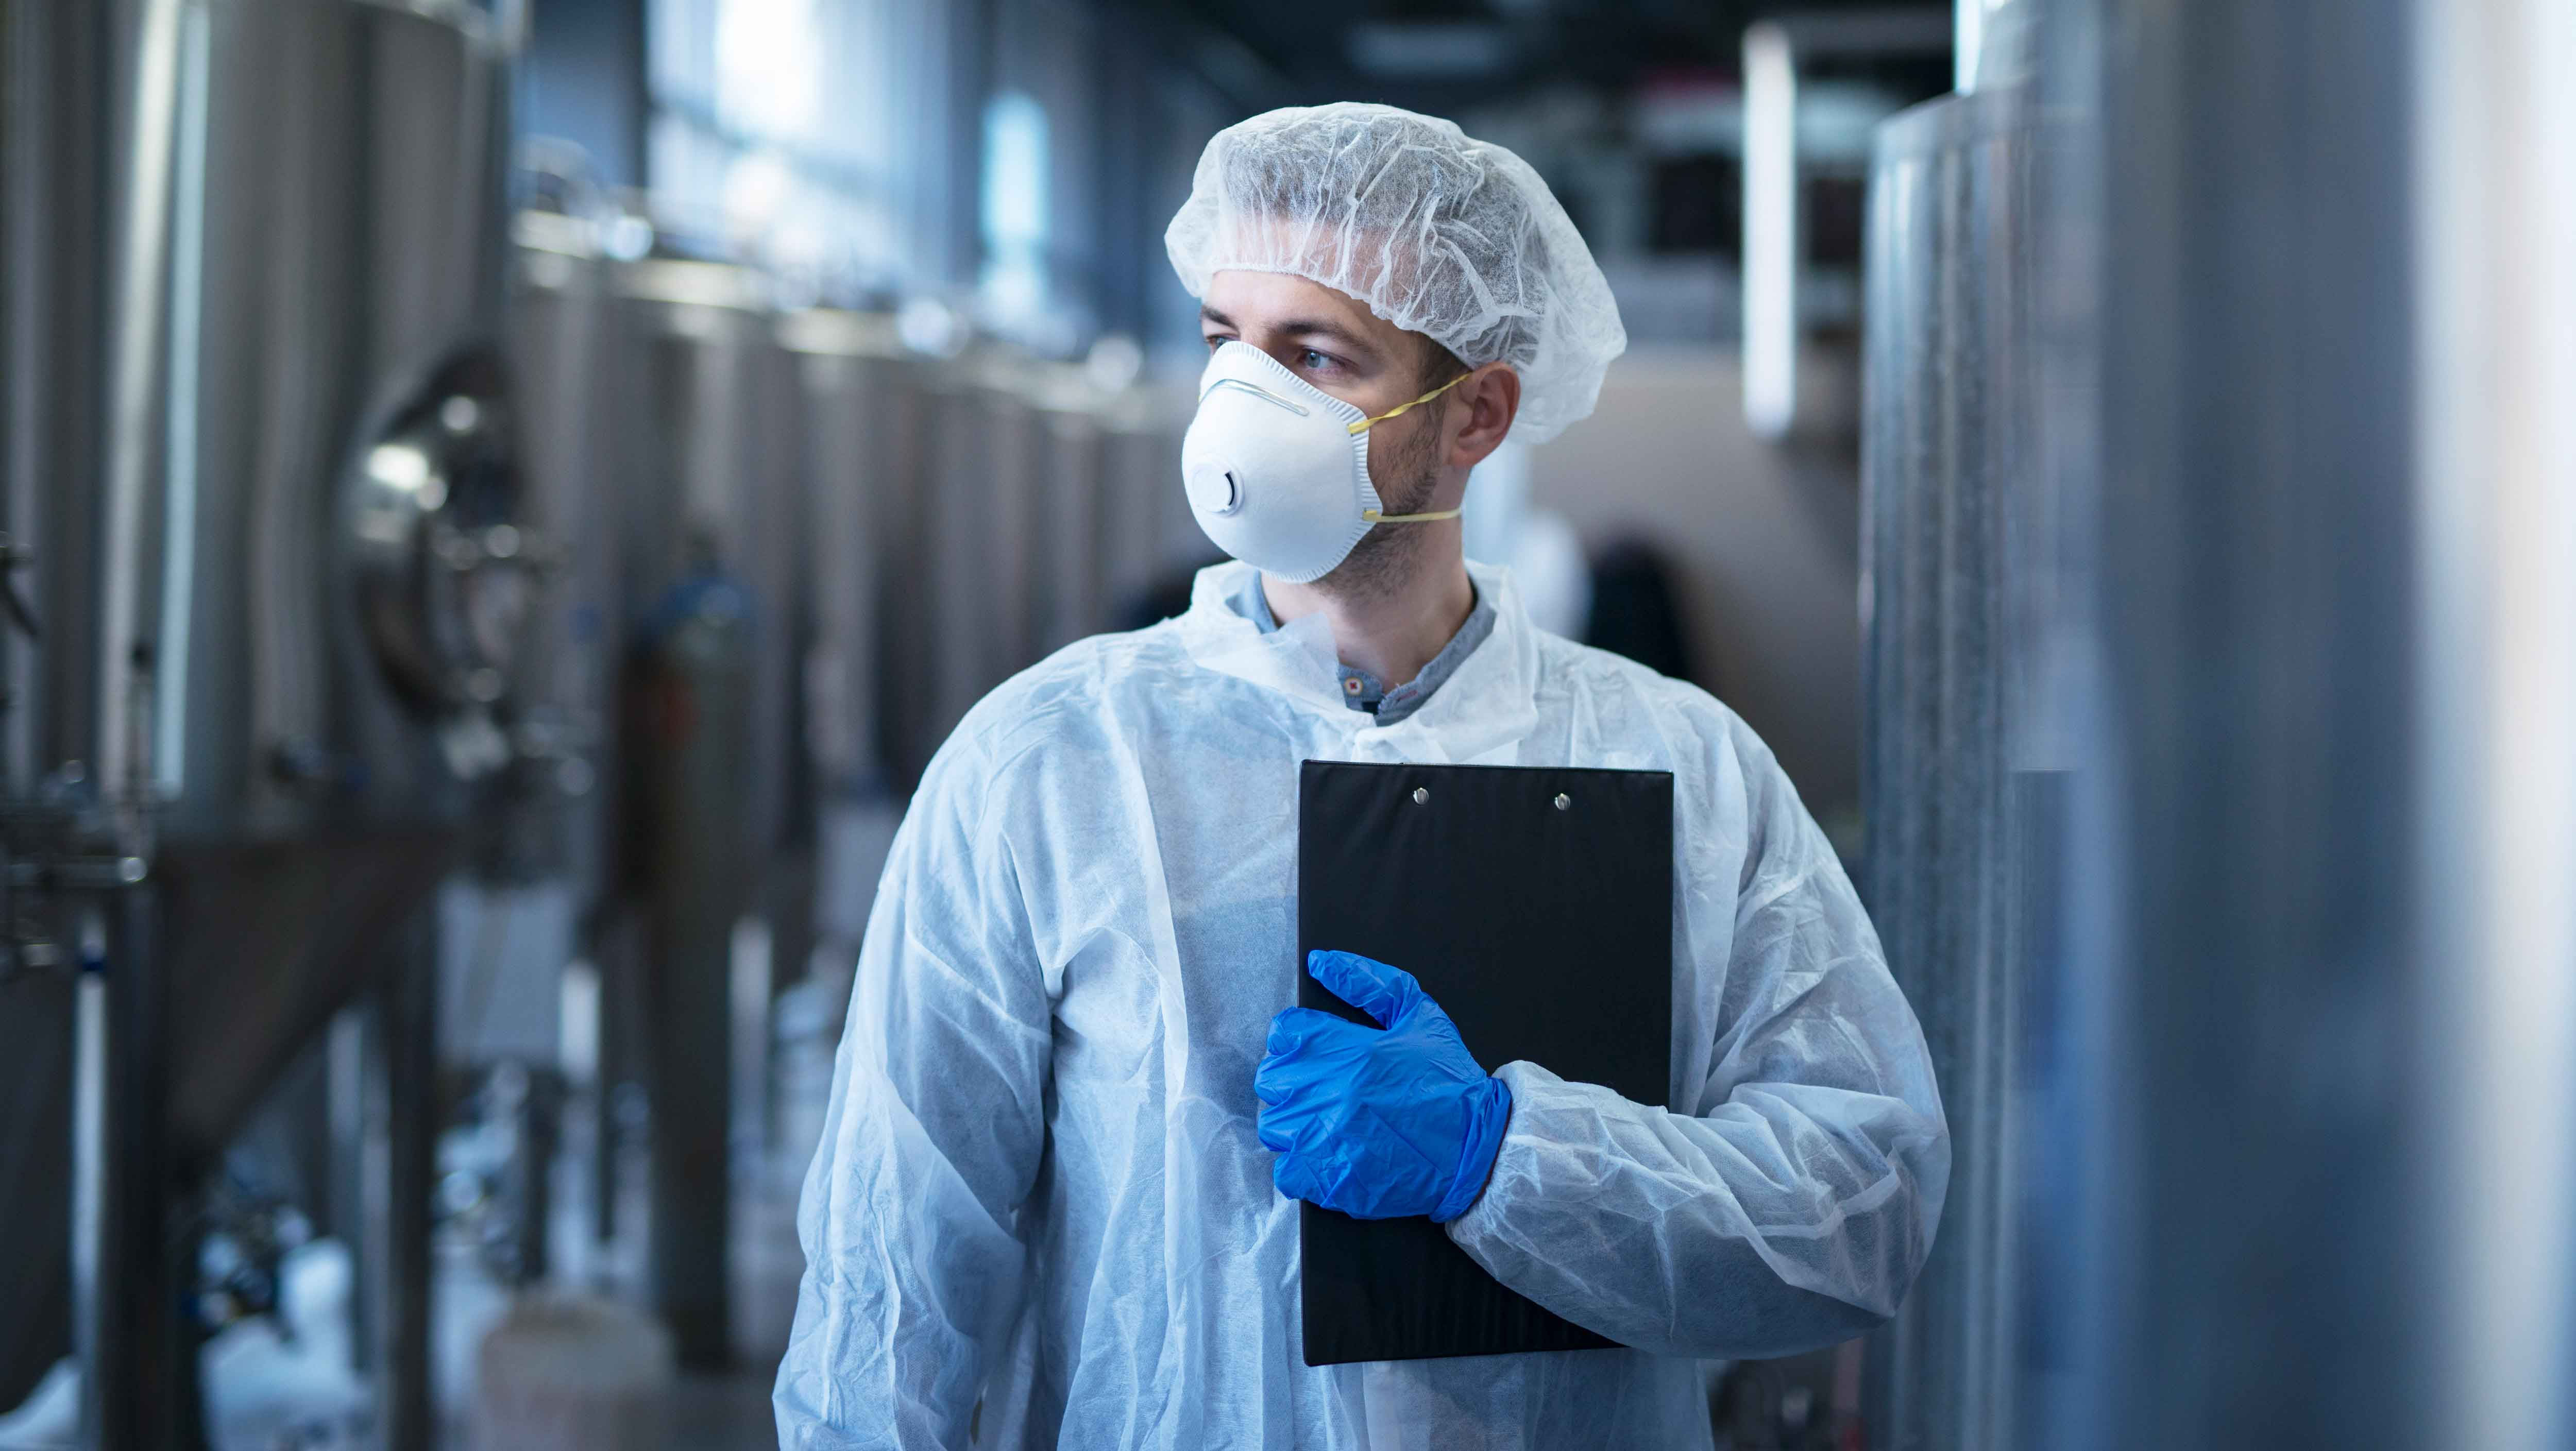 technologist-protective-white-suit-with-hairnet-mask-standing-food-factory